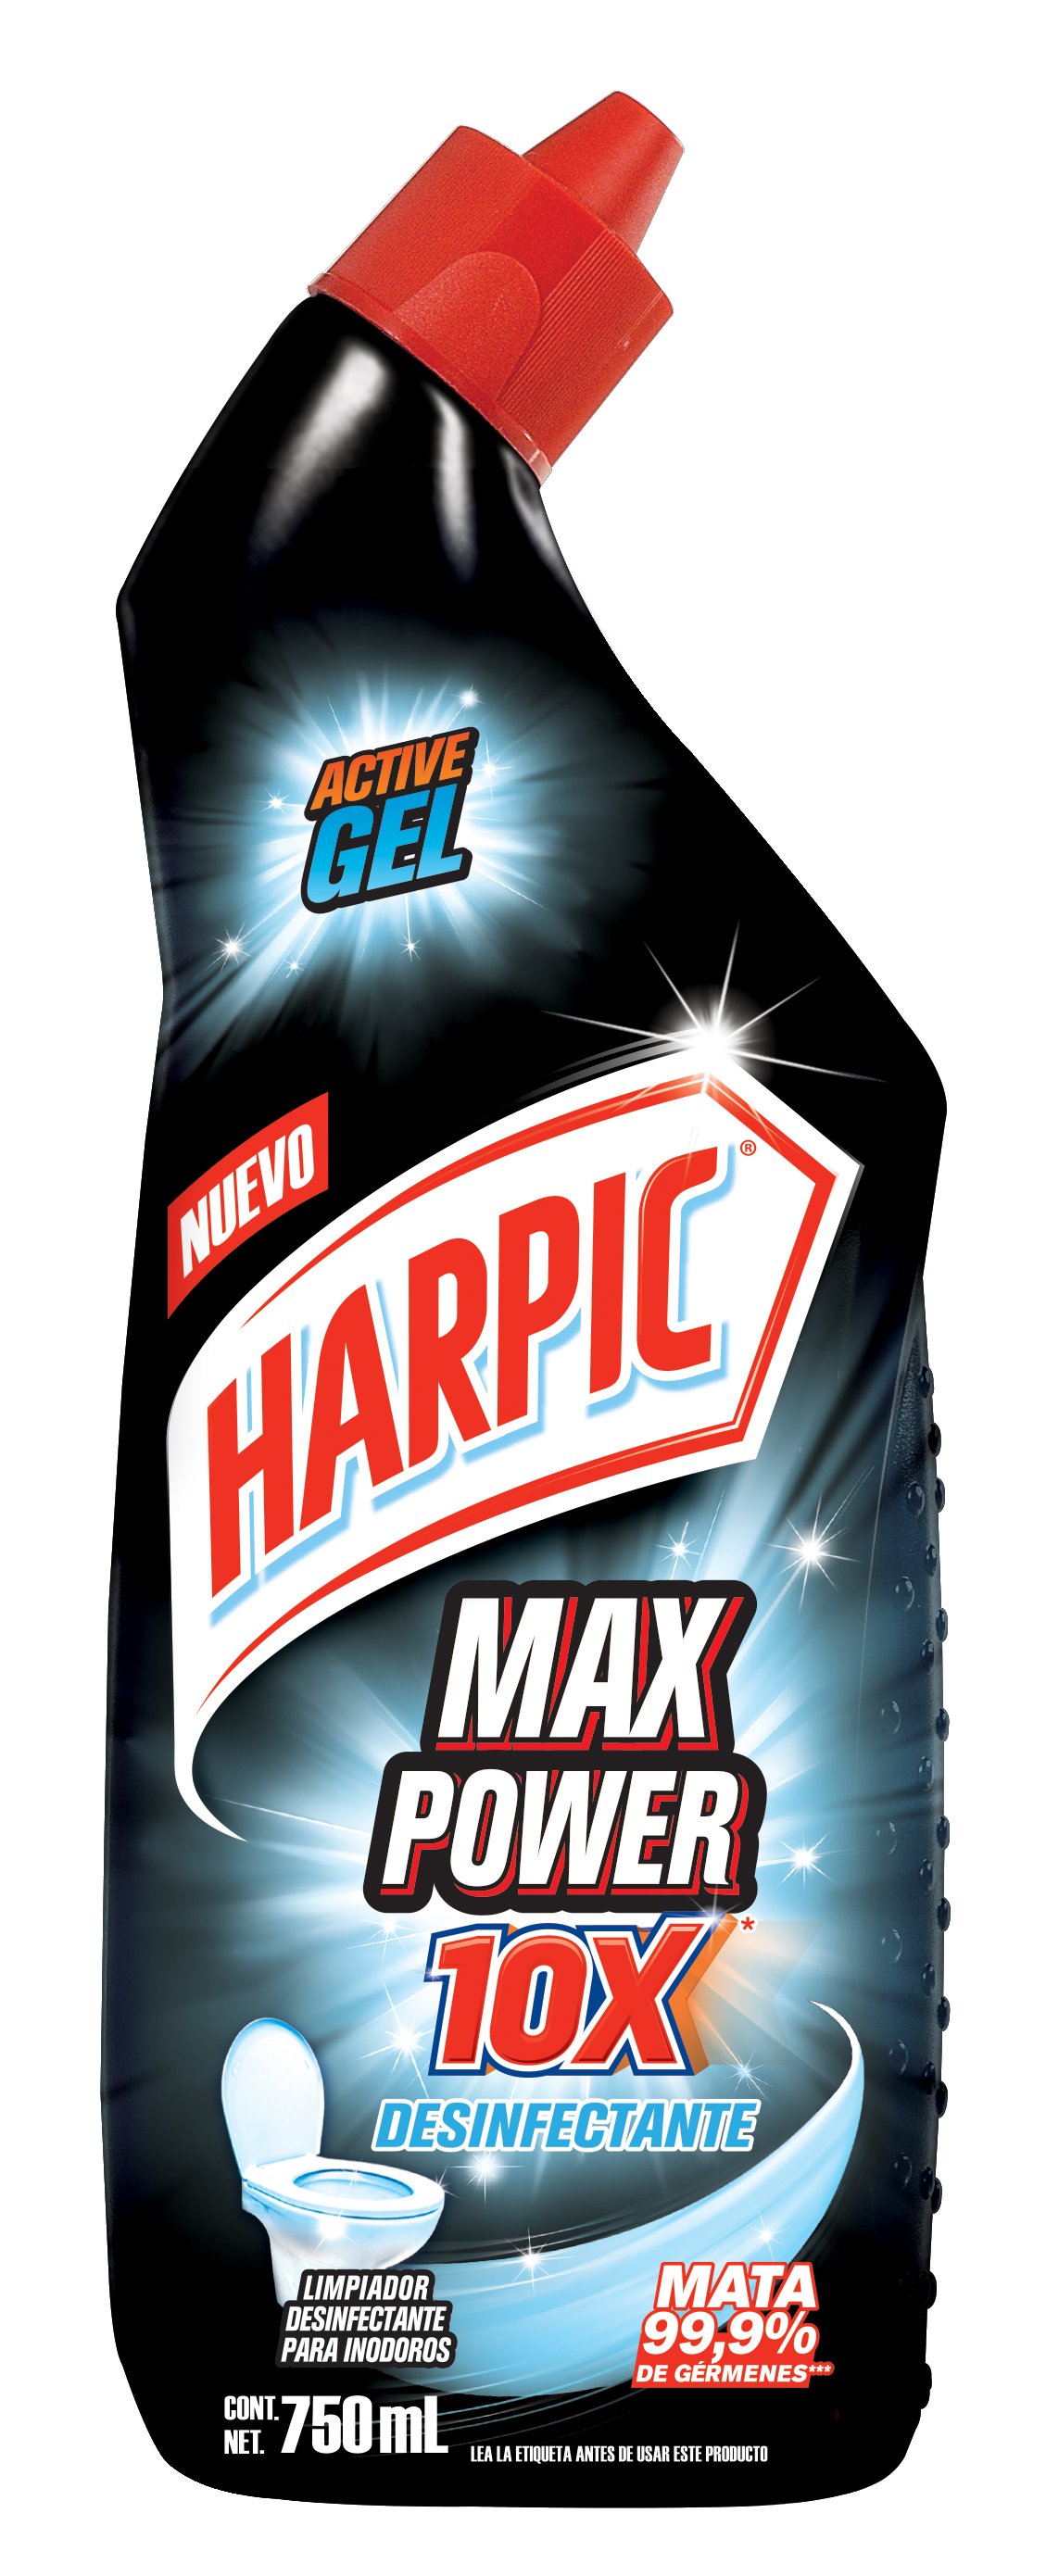 Harpic® MAX POWER 10X DESINFECTANTE, 750ml